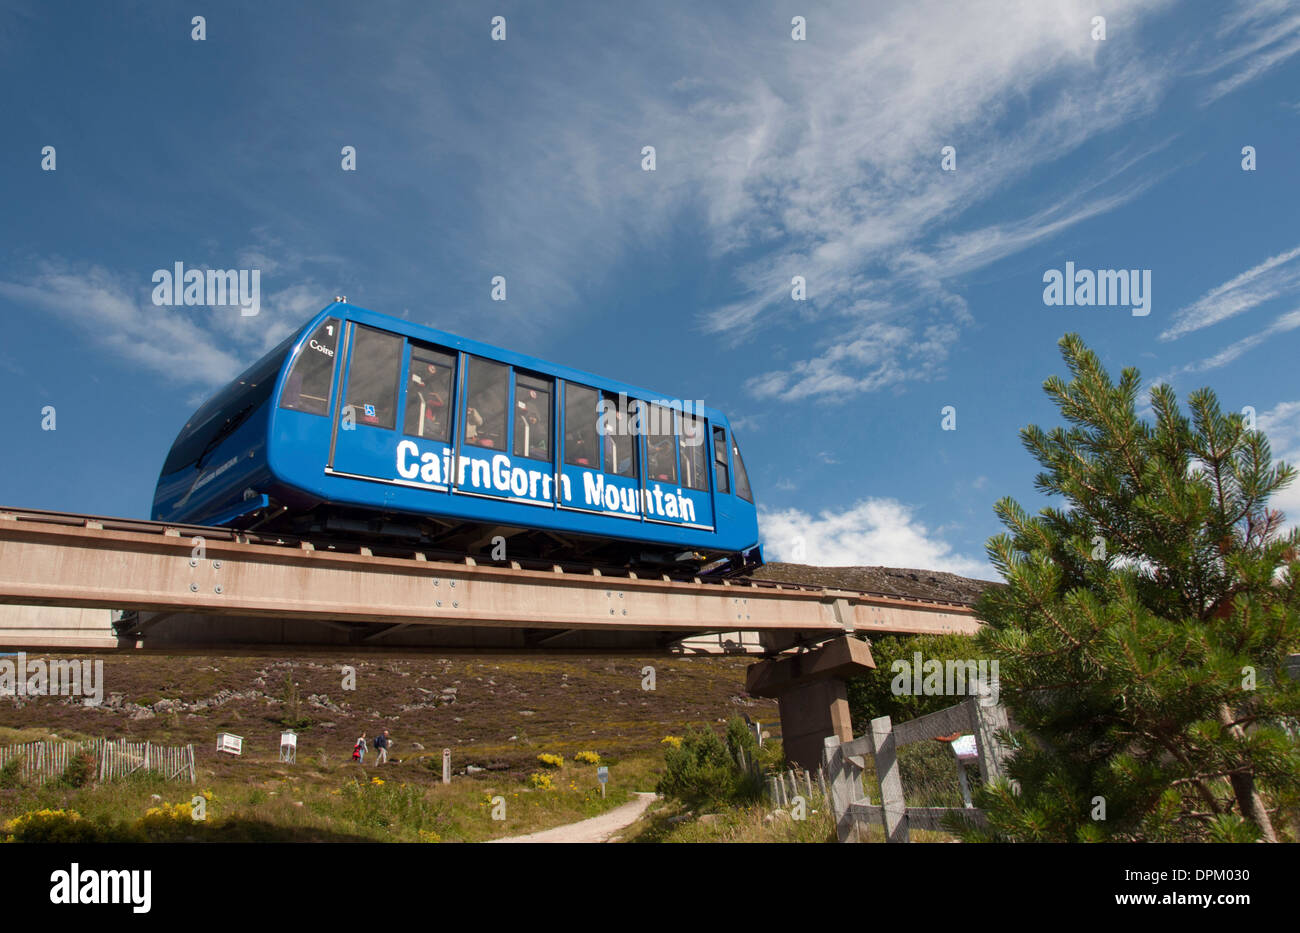 SCOTLANDS; HIGHLANDS; THE CAIRNGORM MOUNTAIN FUNICULAR - Stock Image